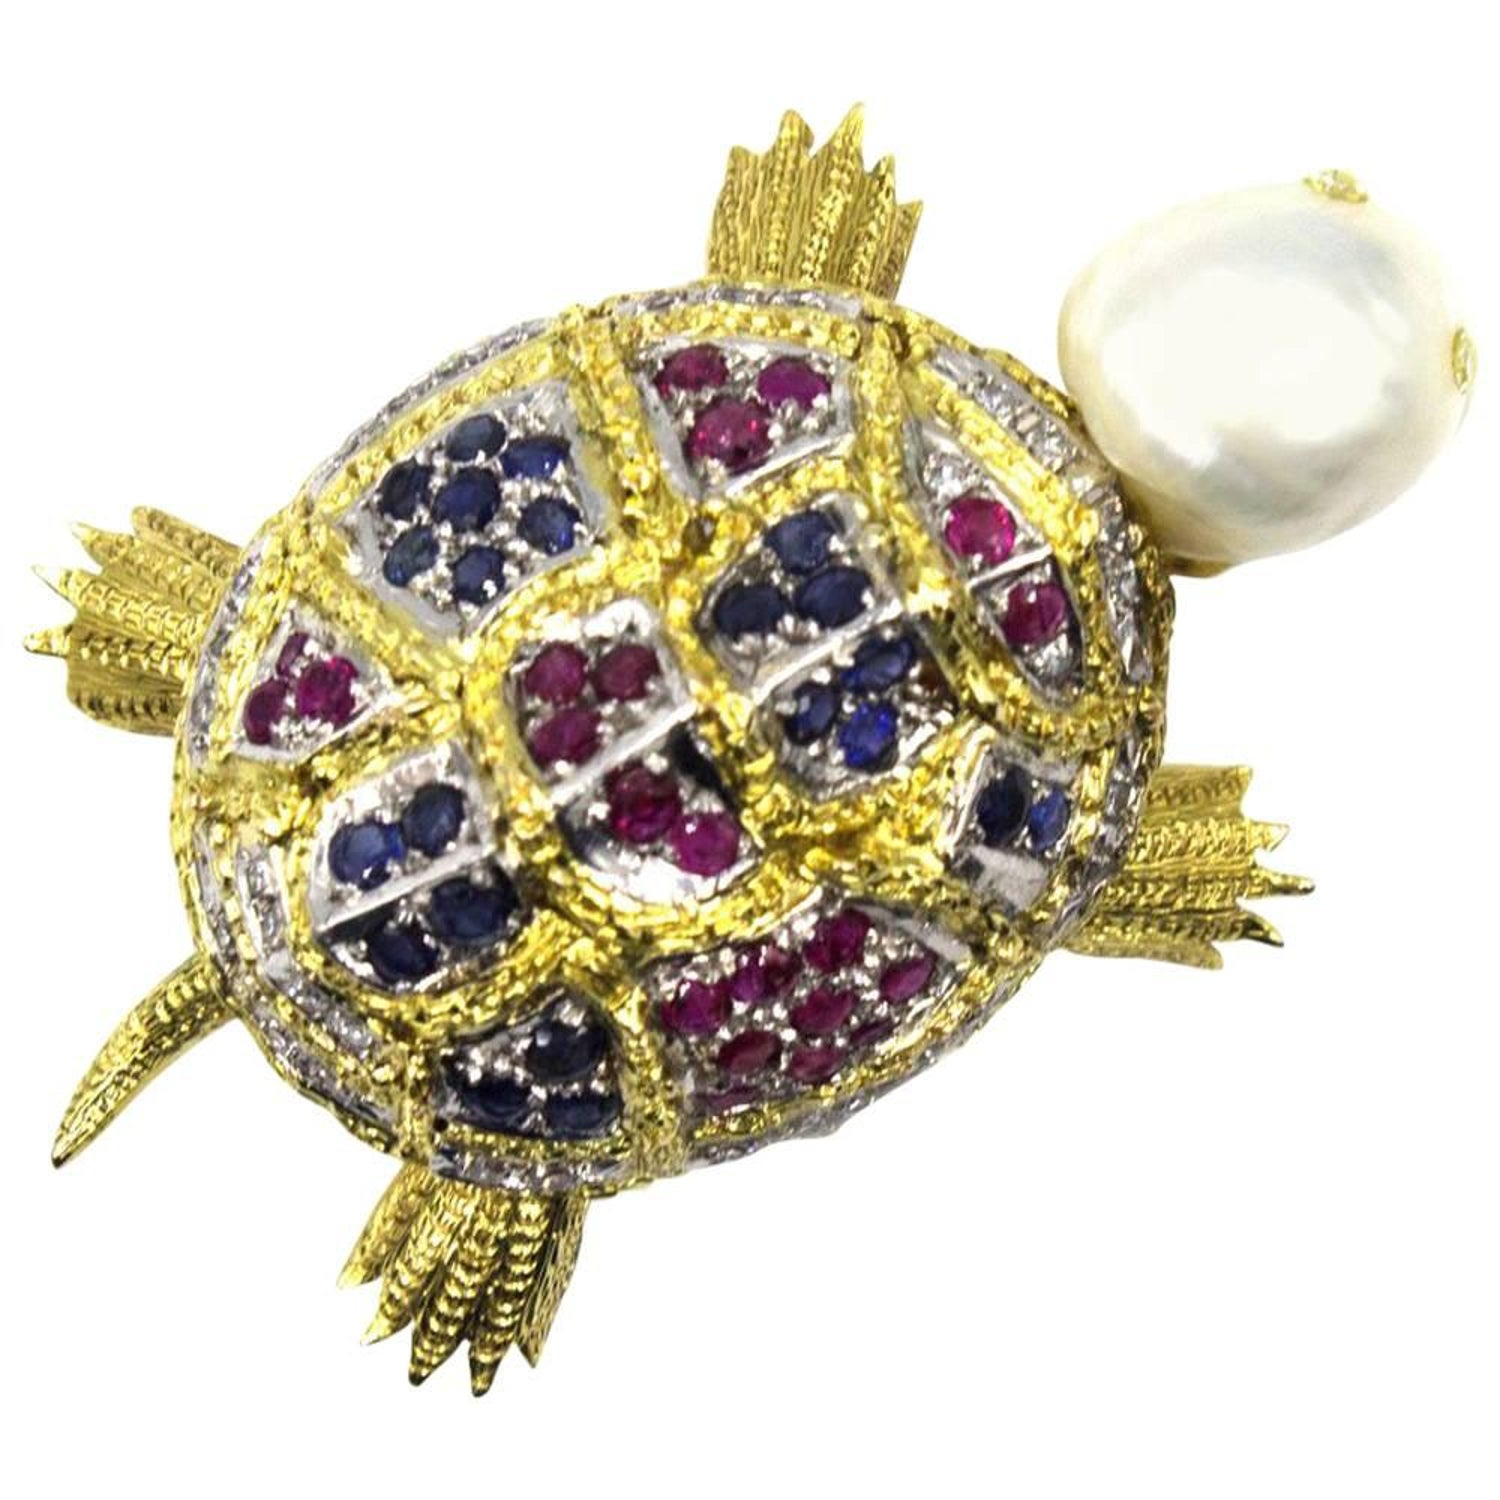 lot sells kashmir sapphire s million news saphire sale final brooch london story christies christie at